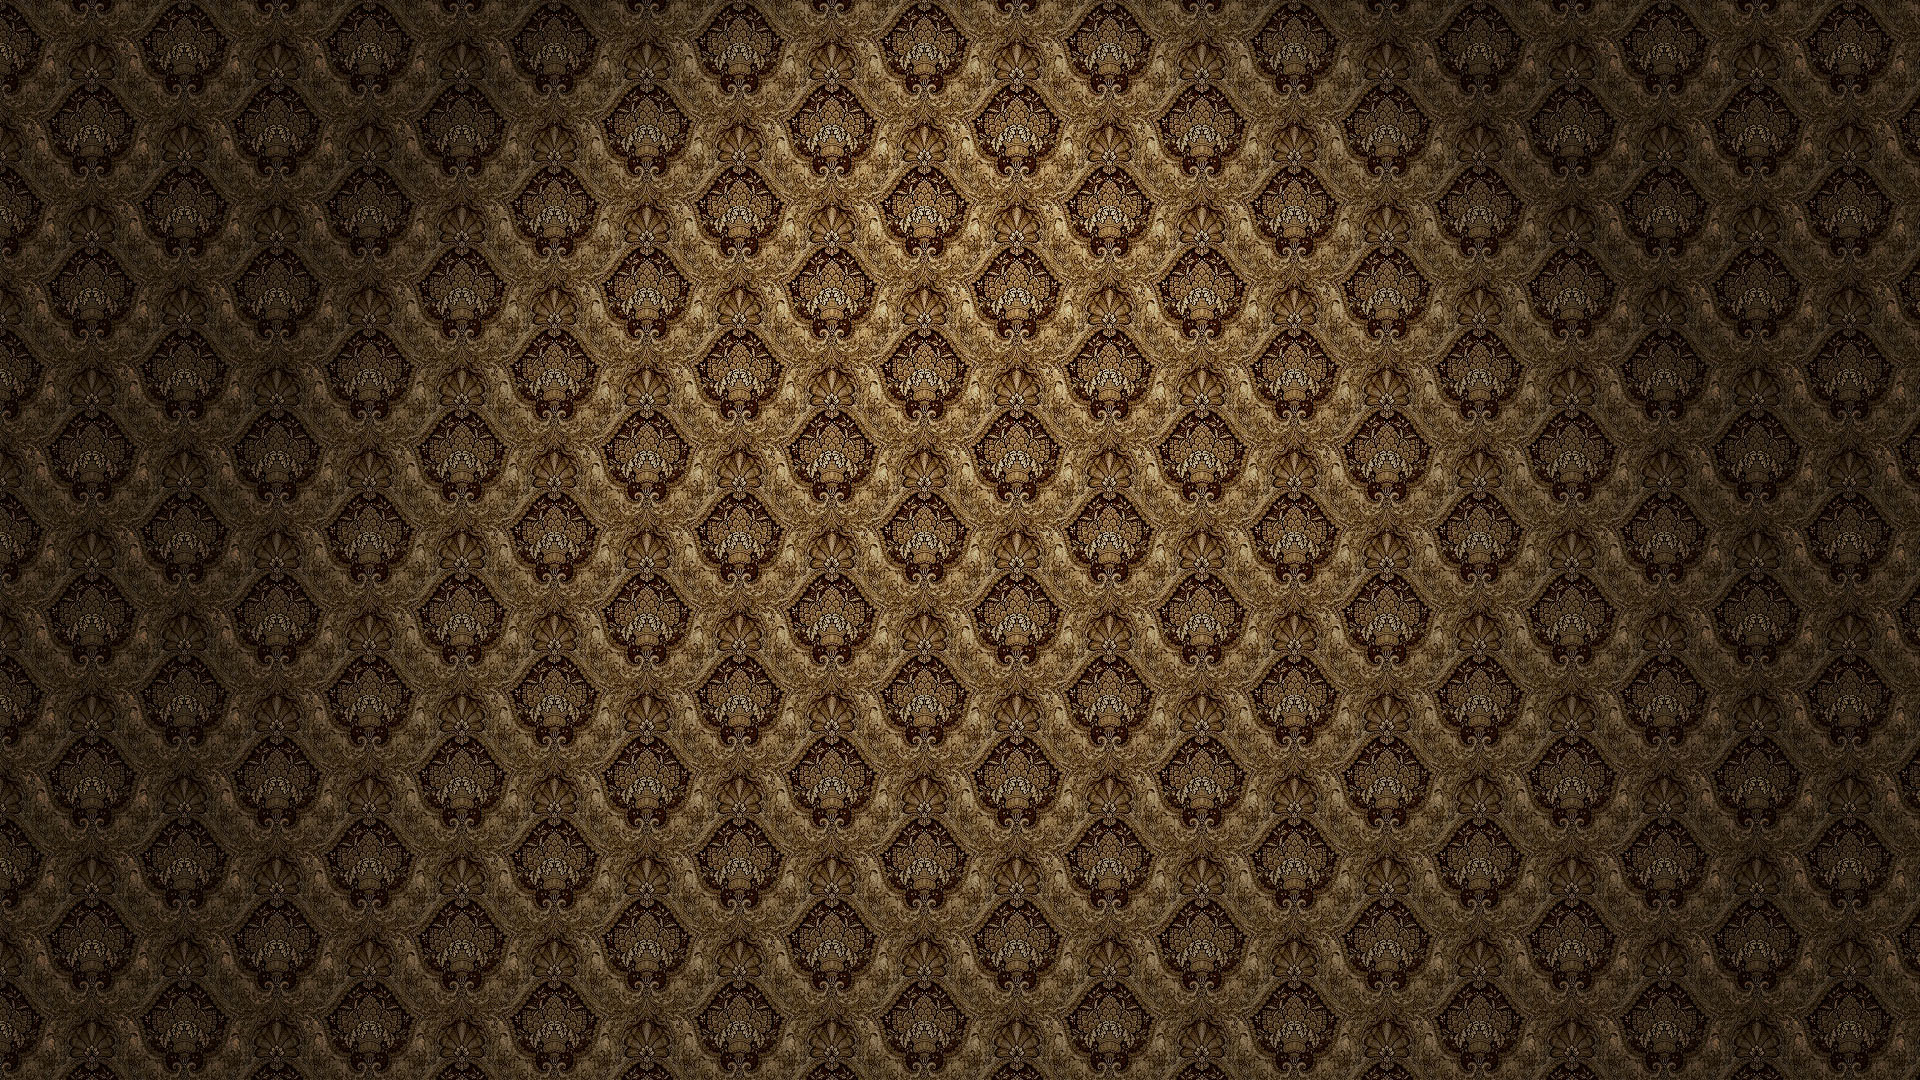 is a Gold and Black Pattern wallpaper This Gold and Black Pattern 1920x1080